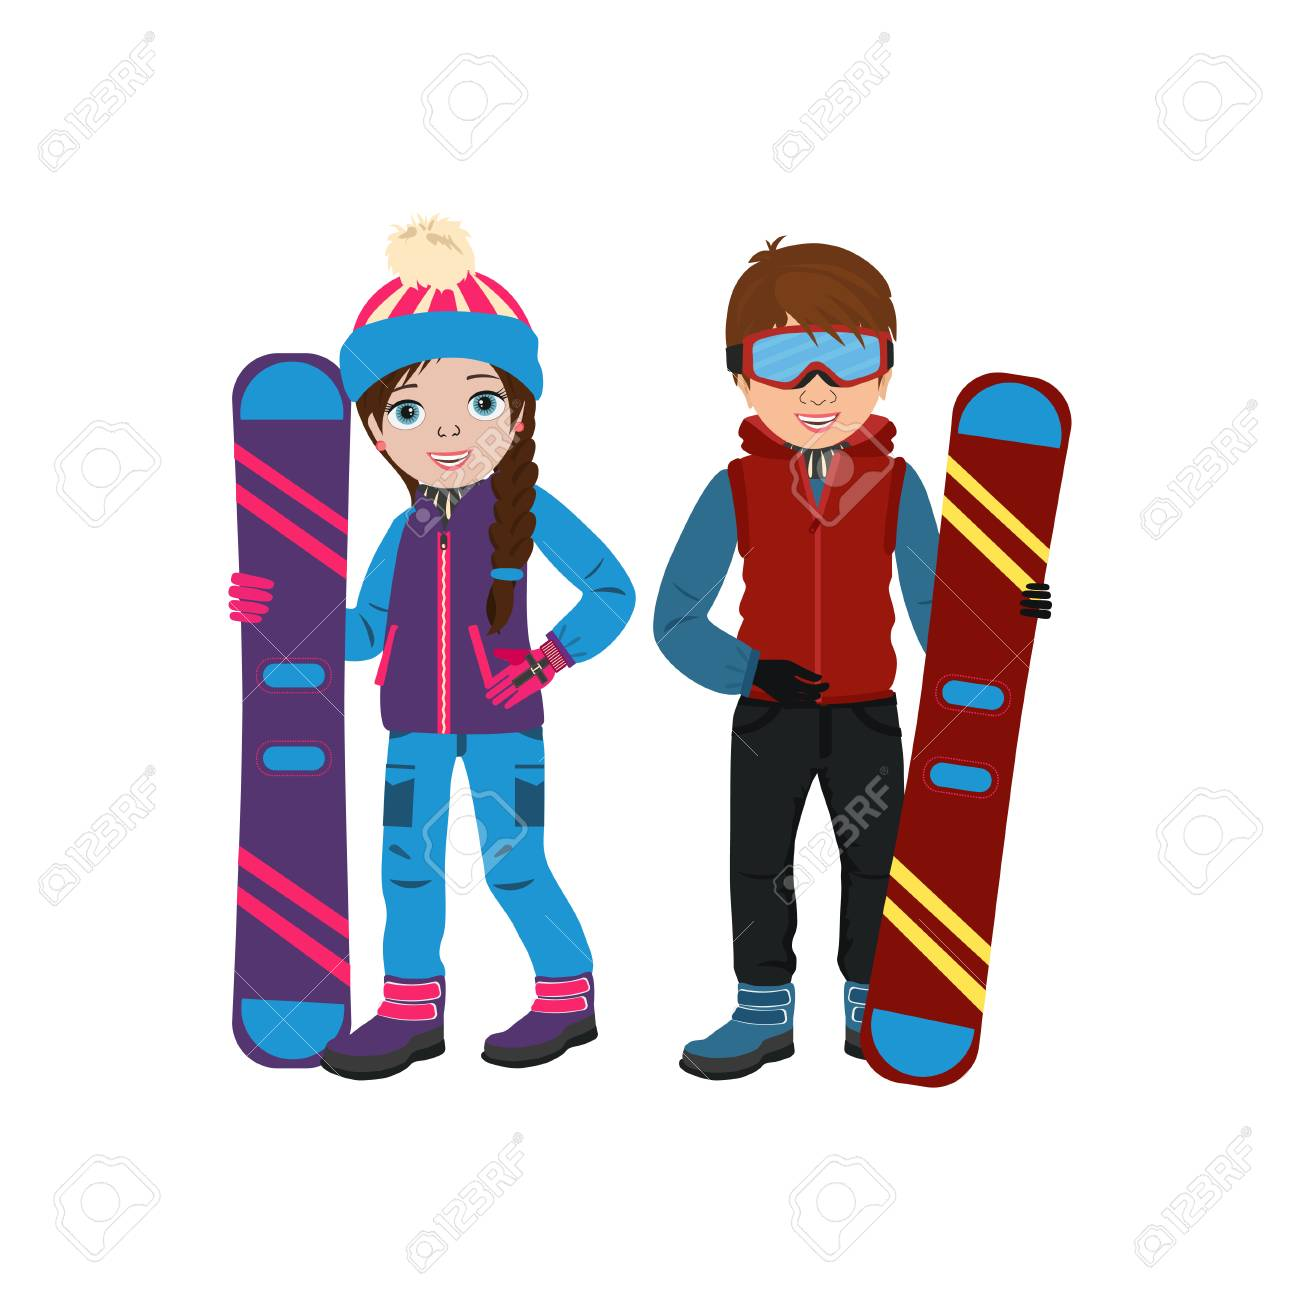 Cute Smiling Boy And Girl In Winter Clothing And With Snowboard Royalty Free Cliparts Vectors And Stock Illustration Image 112821404